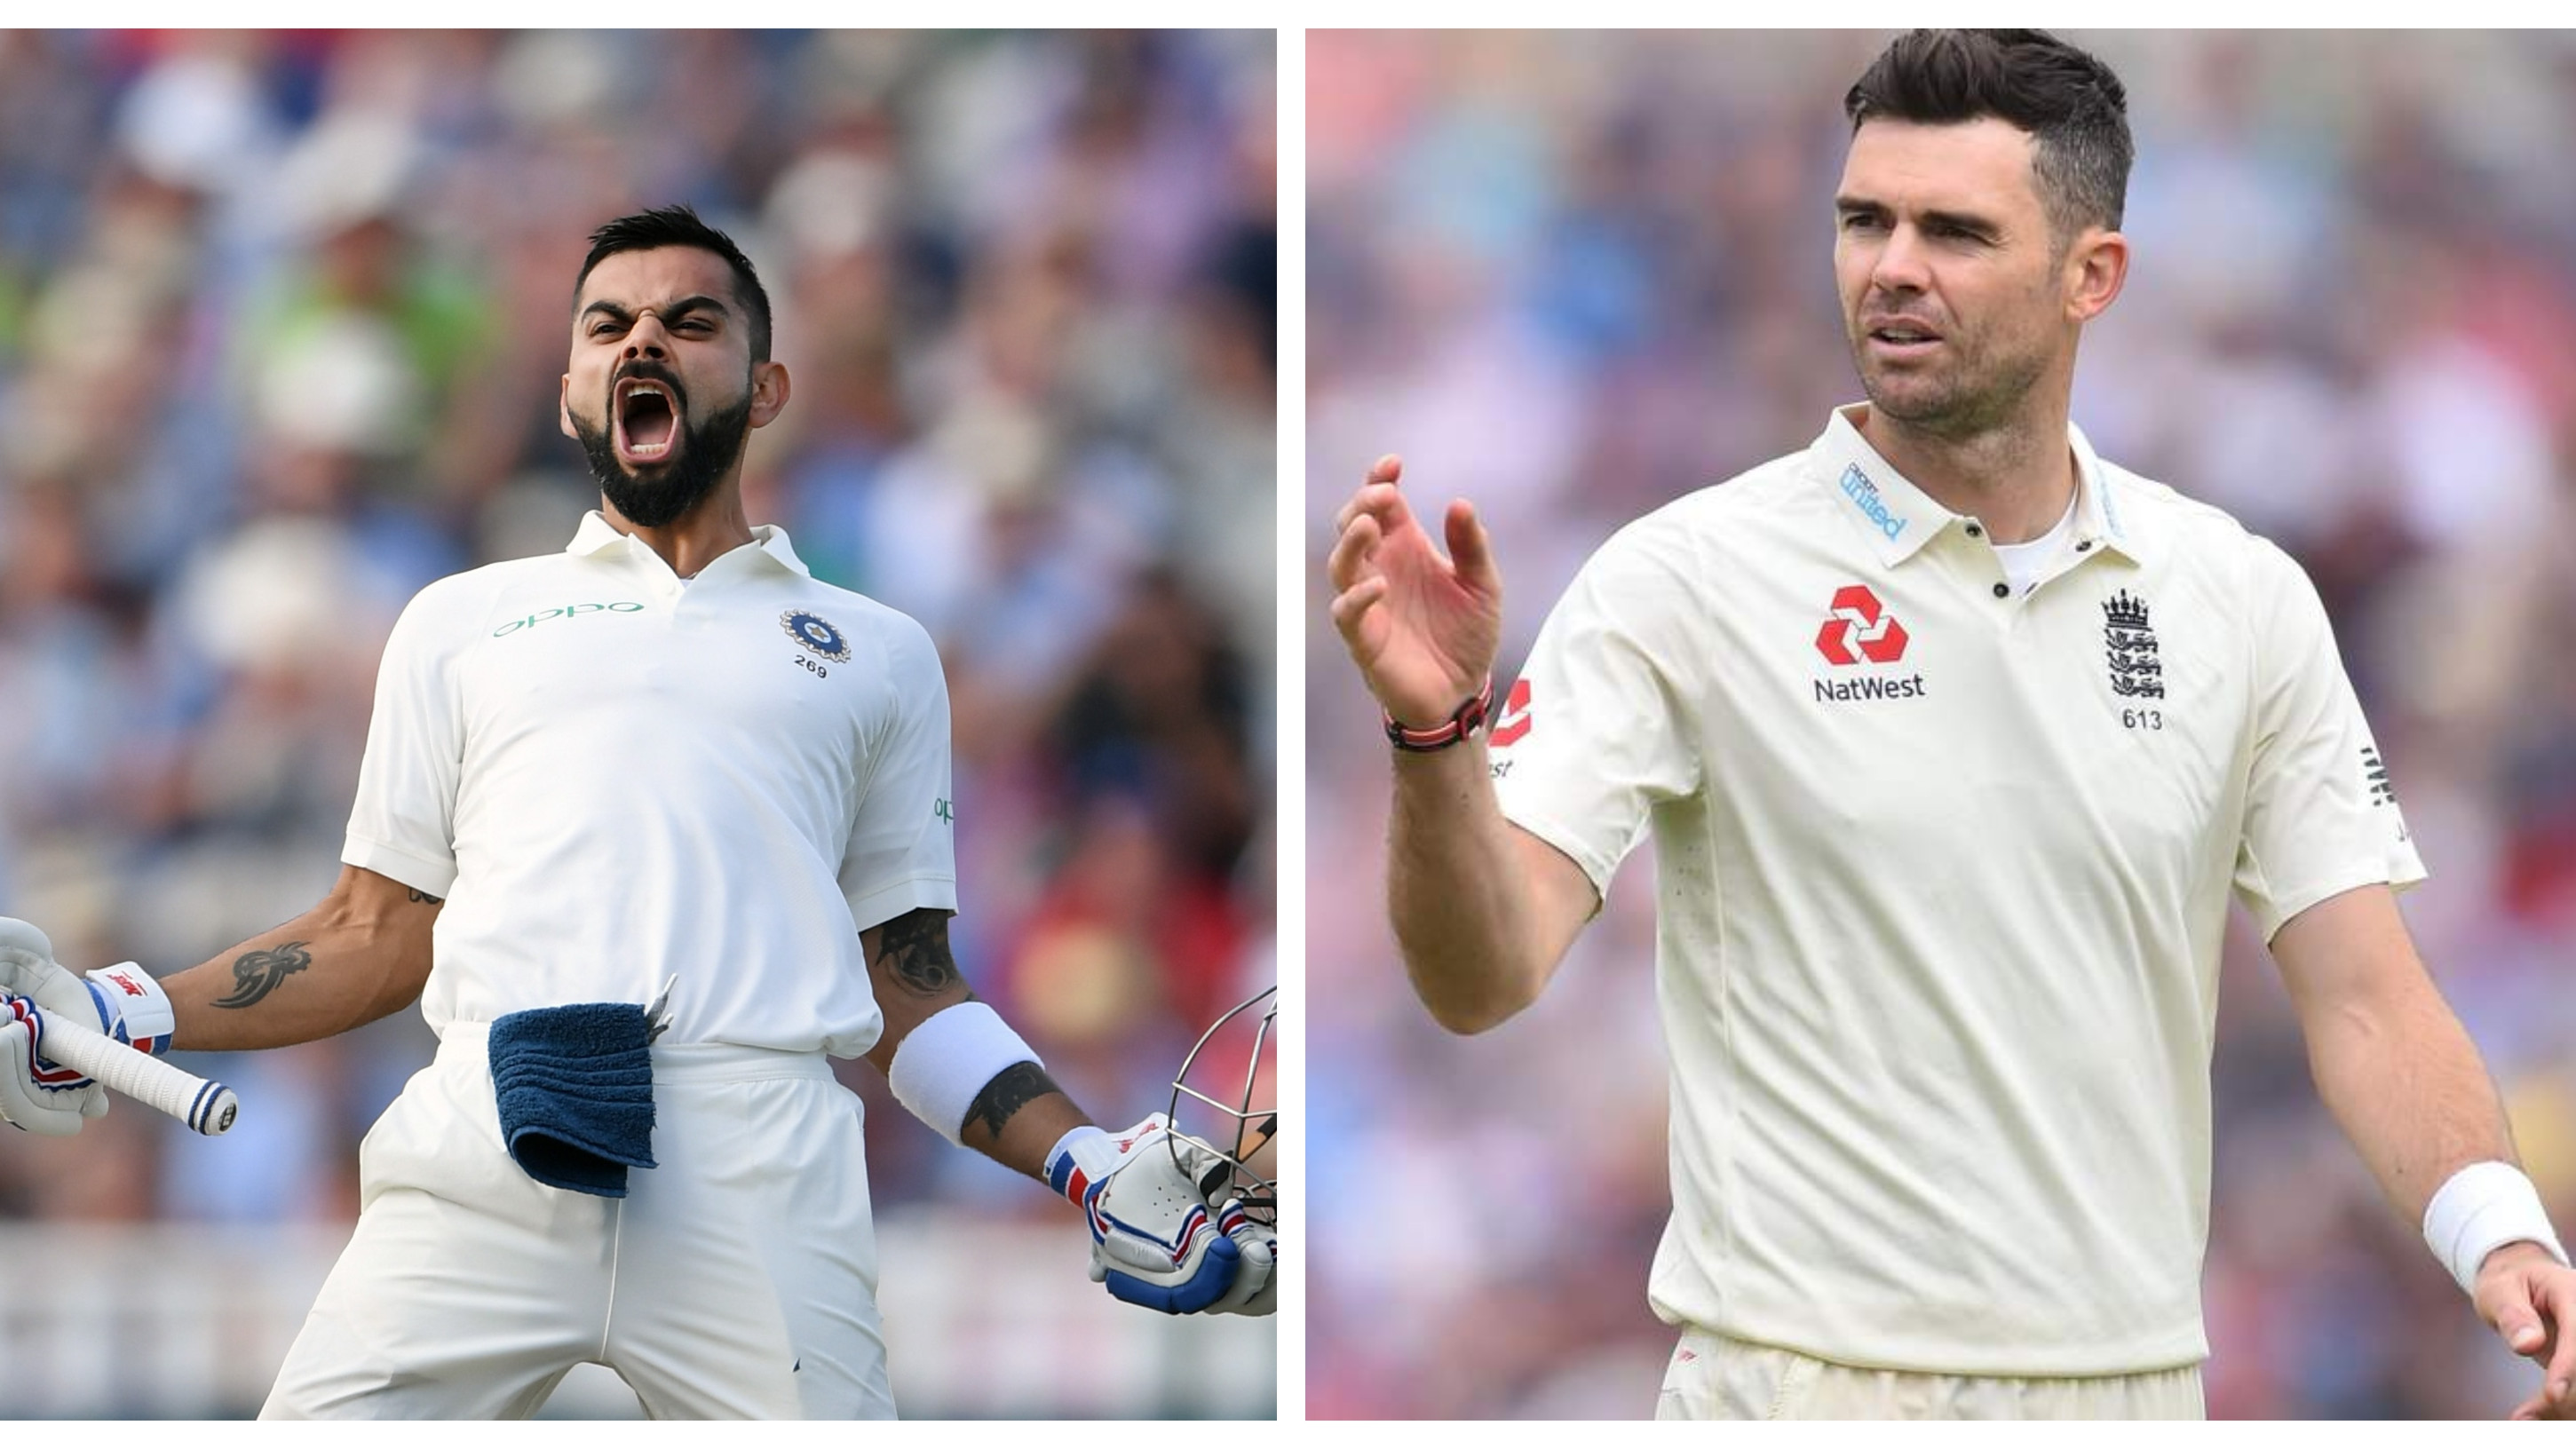 ENG vs IND 2018: Rivalry with Virat Kohli is fierce but fair, says James Anderson